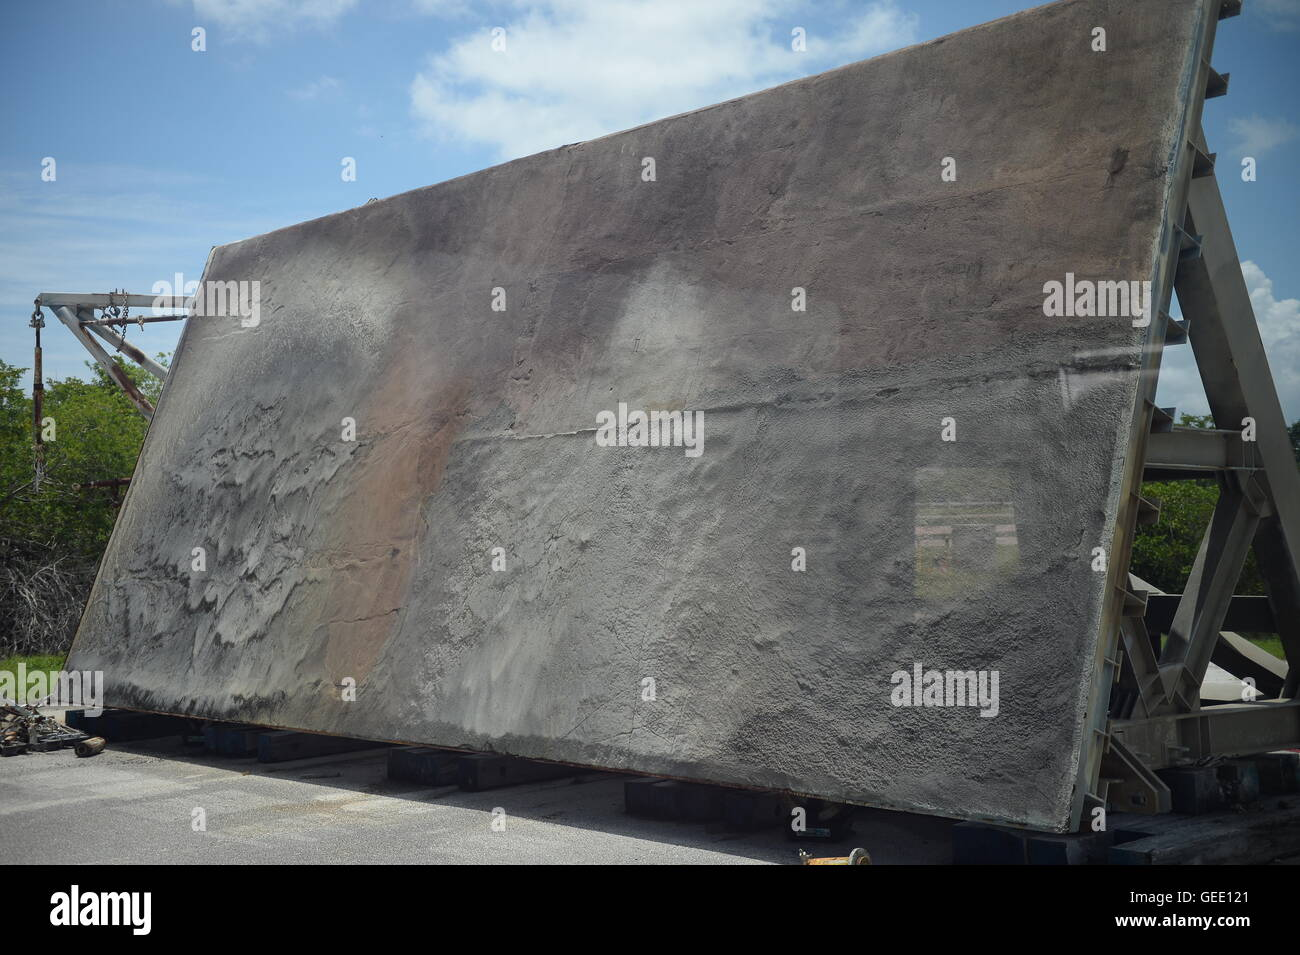 Heat Deflectors  at the Kennedy Space Centre, Cape Canaveral, Florida, America - Stock Image